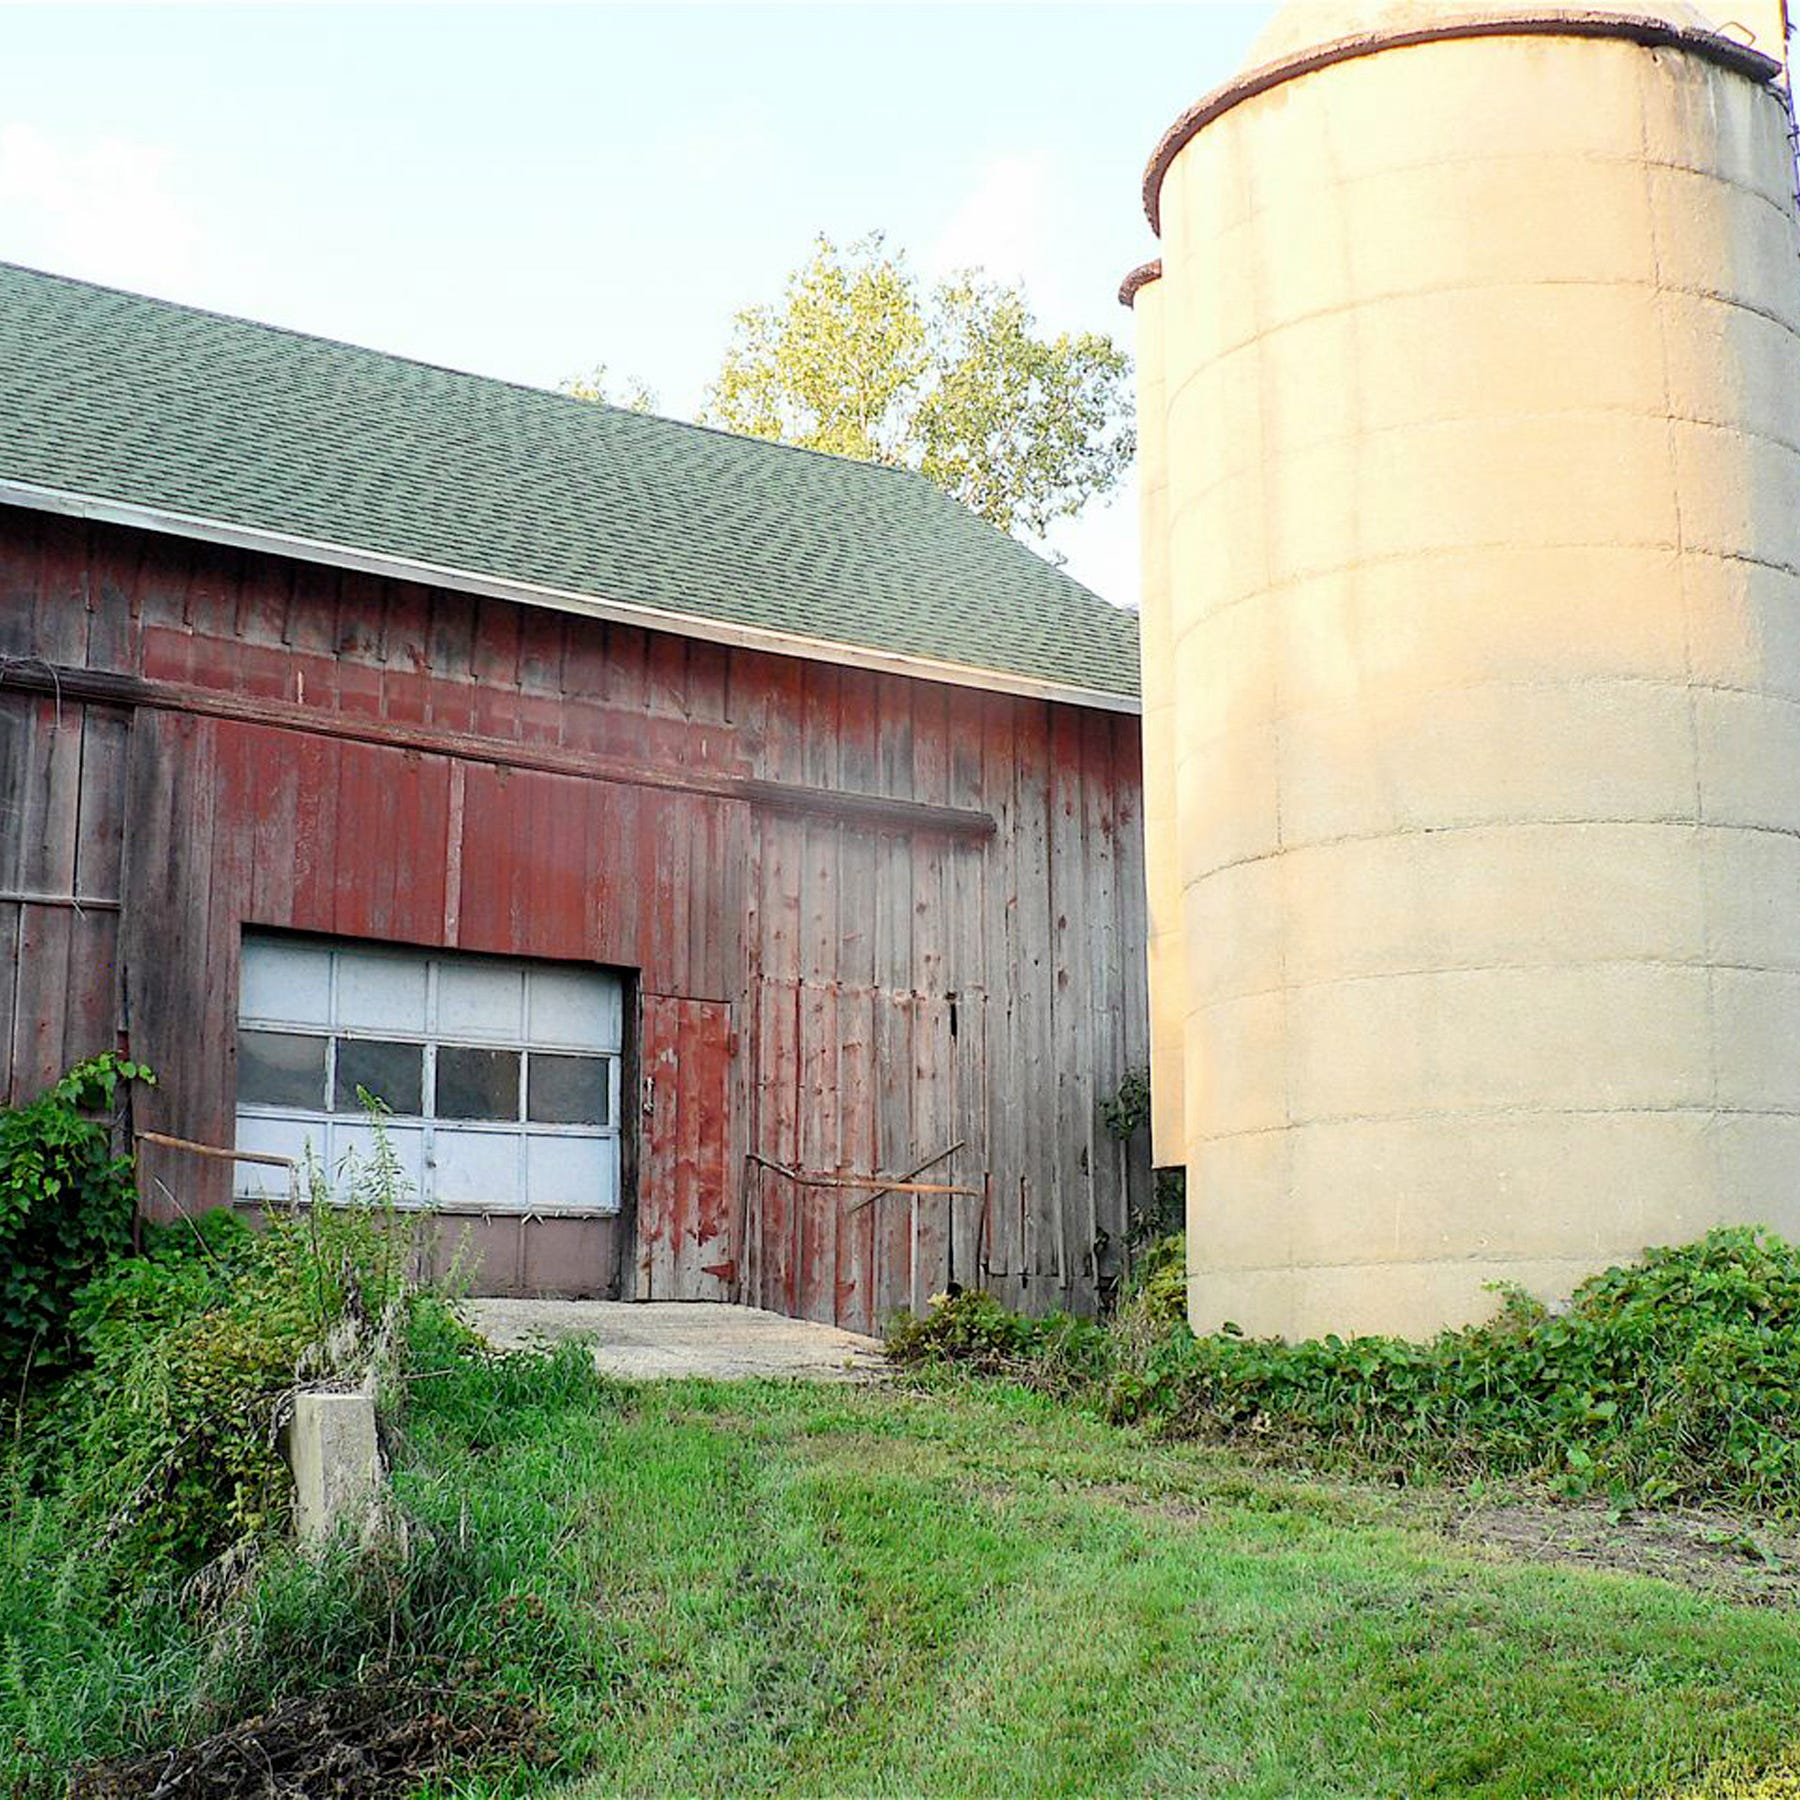 What happens to the empty barns?